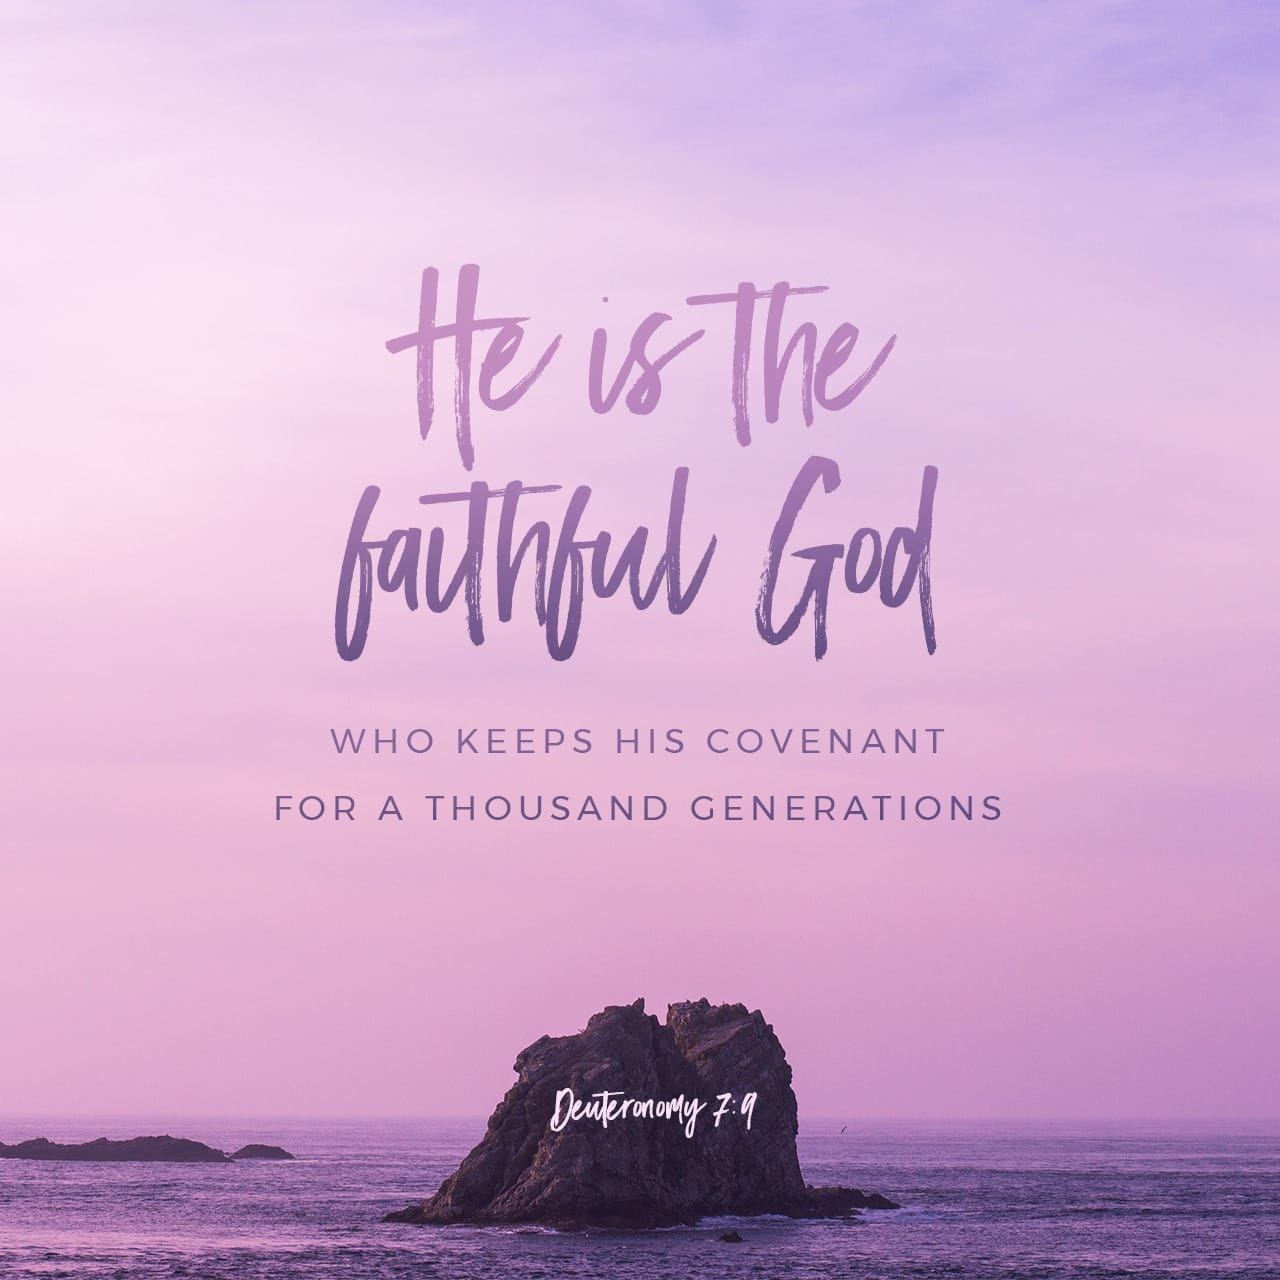 Deuteronomy 7:9 Know therefore that the LORD your God is God; he is the faithful God, keeping his covenant of love to a thousand generations of those who love him and keep his commandments. | New International Version (NIV)